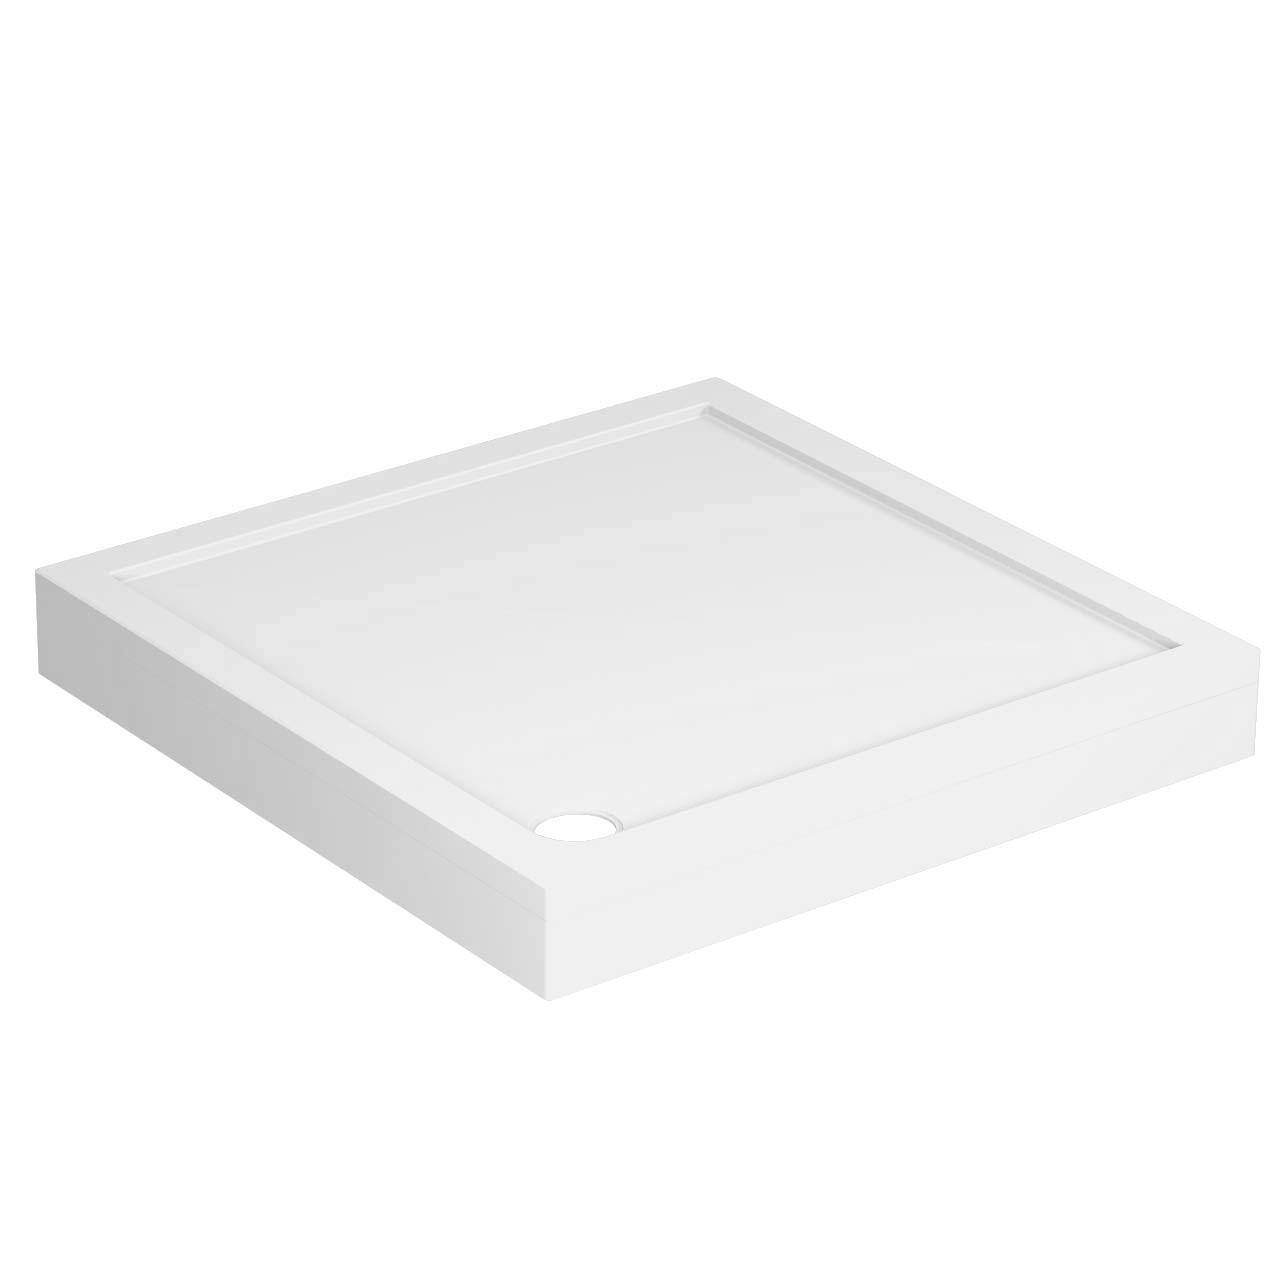 40mm Pearlstone 1000 x 1000 Square Shower Tray & Plinth